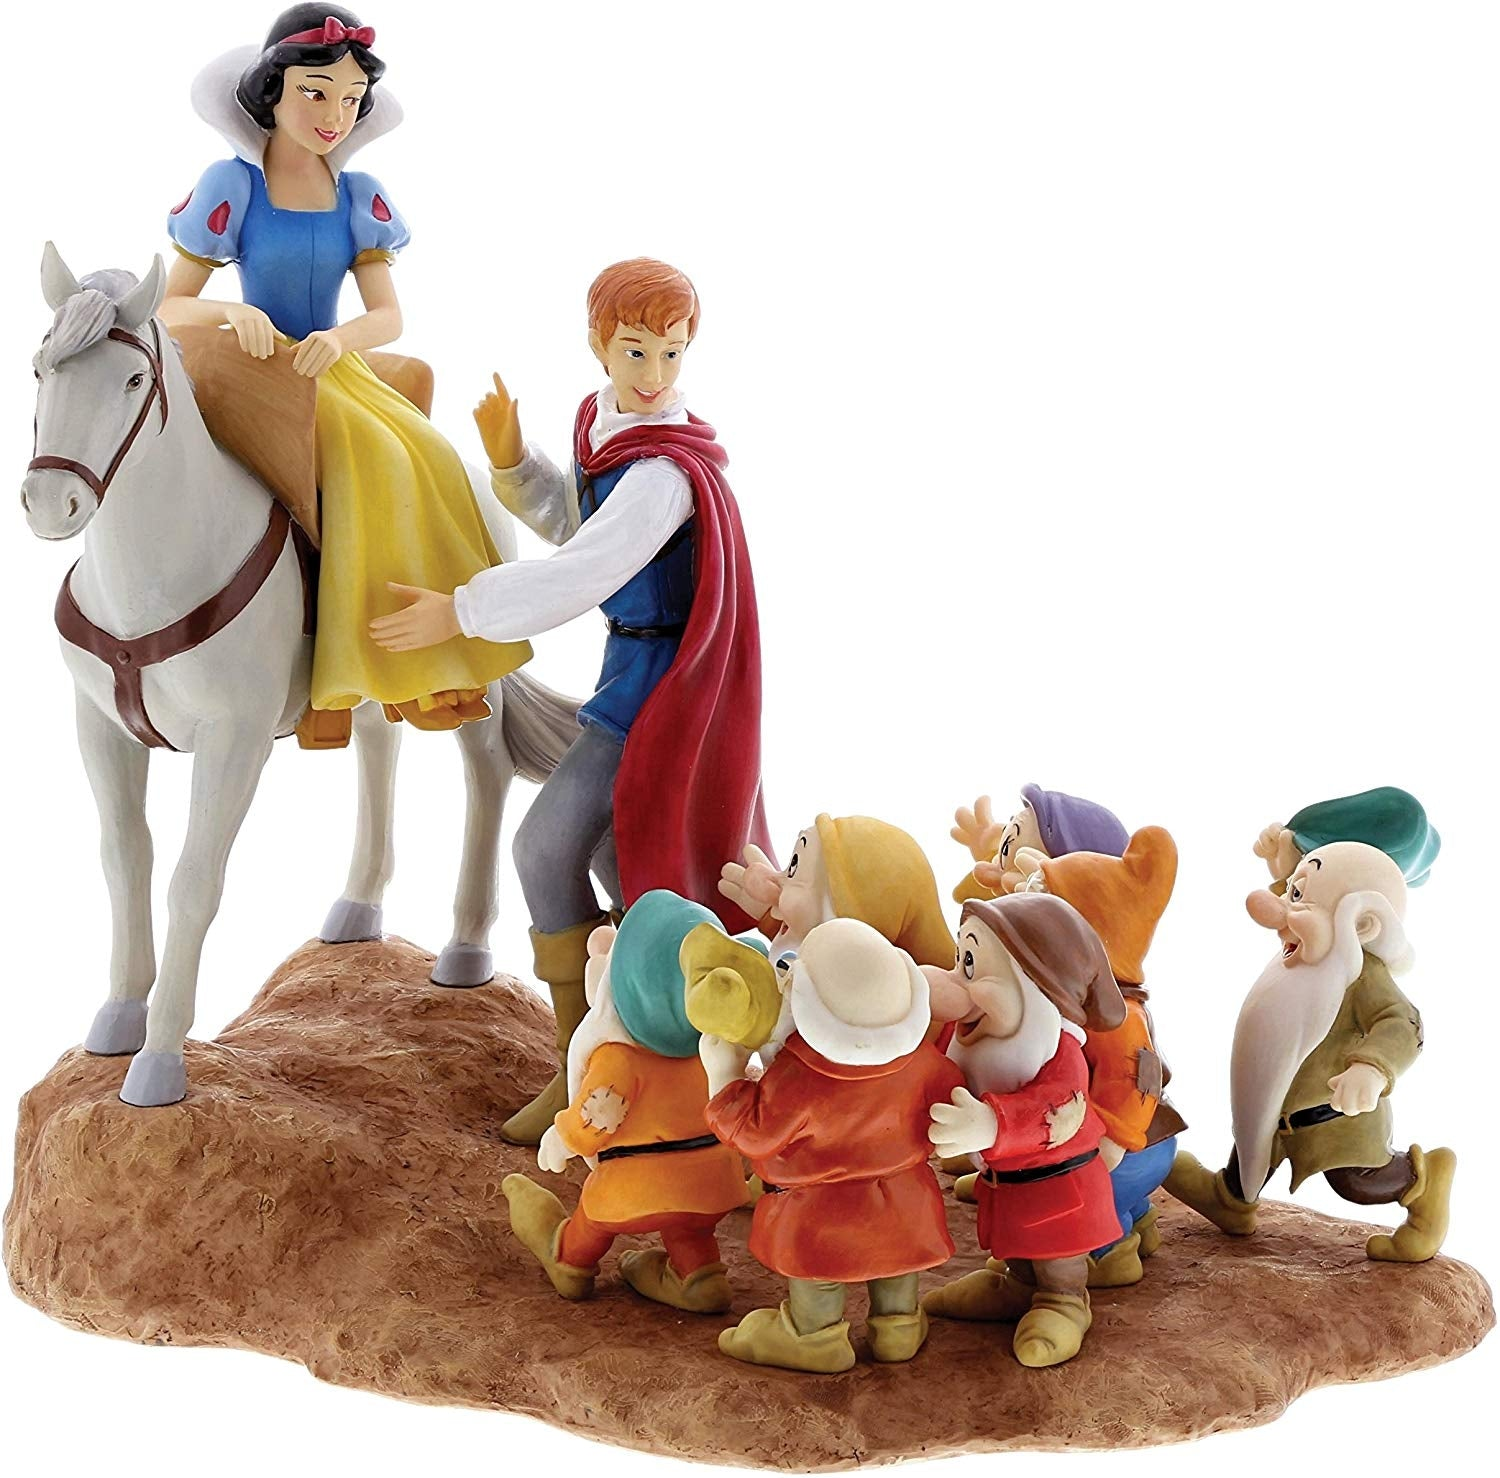 "Snow White ""A Joyful Farewell"" - Disney Enchanting Figurine"